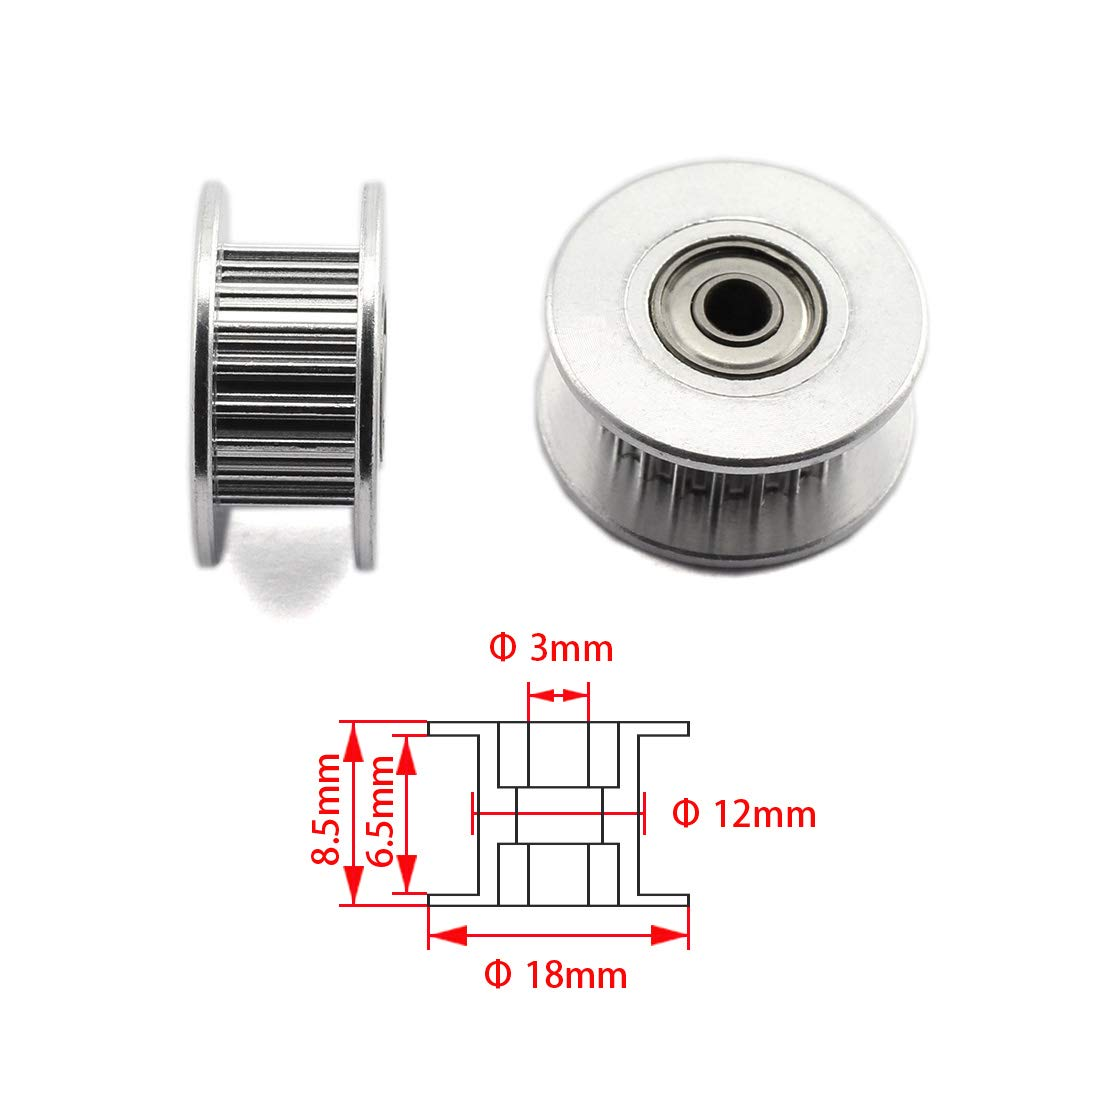 HJ Garden 2pcs 20 Teeth 3mm Bore Idler Timing Pulley with Bearing 2GT Aluminium Alloy H Type GT2 Synchronous Wheel for 6mm Width Belt 3D Printer CNC Mechanical Drive Silver